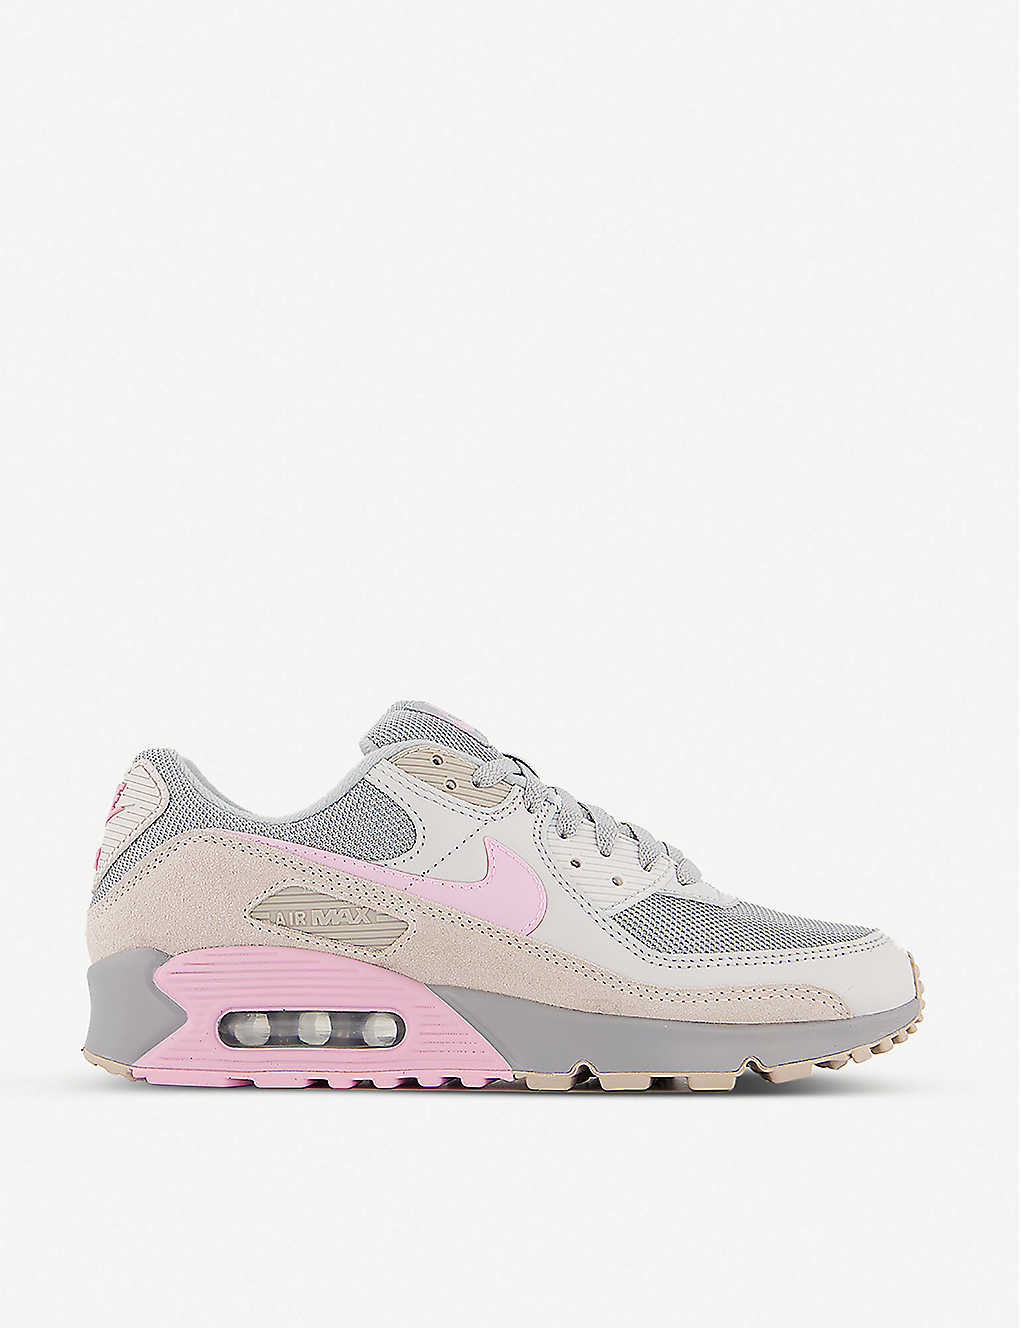 Air Max 90 leather and textile trainers